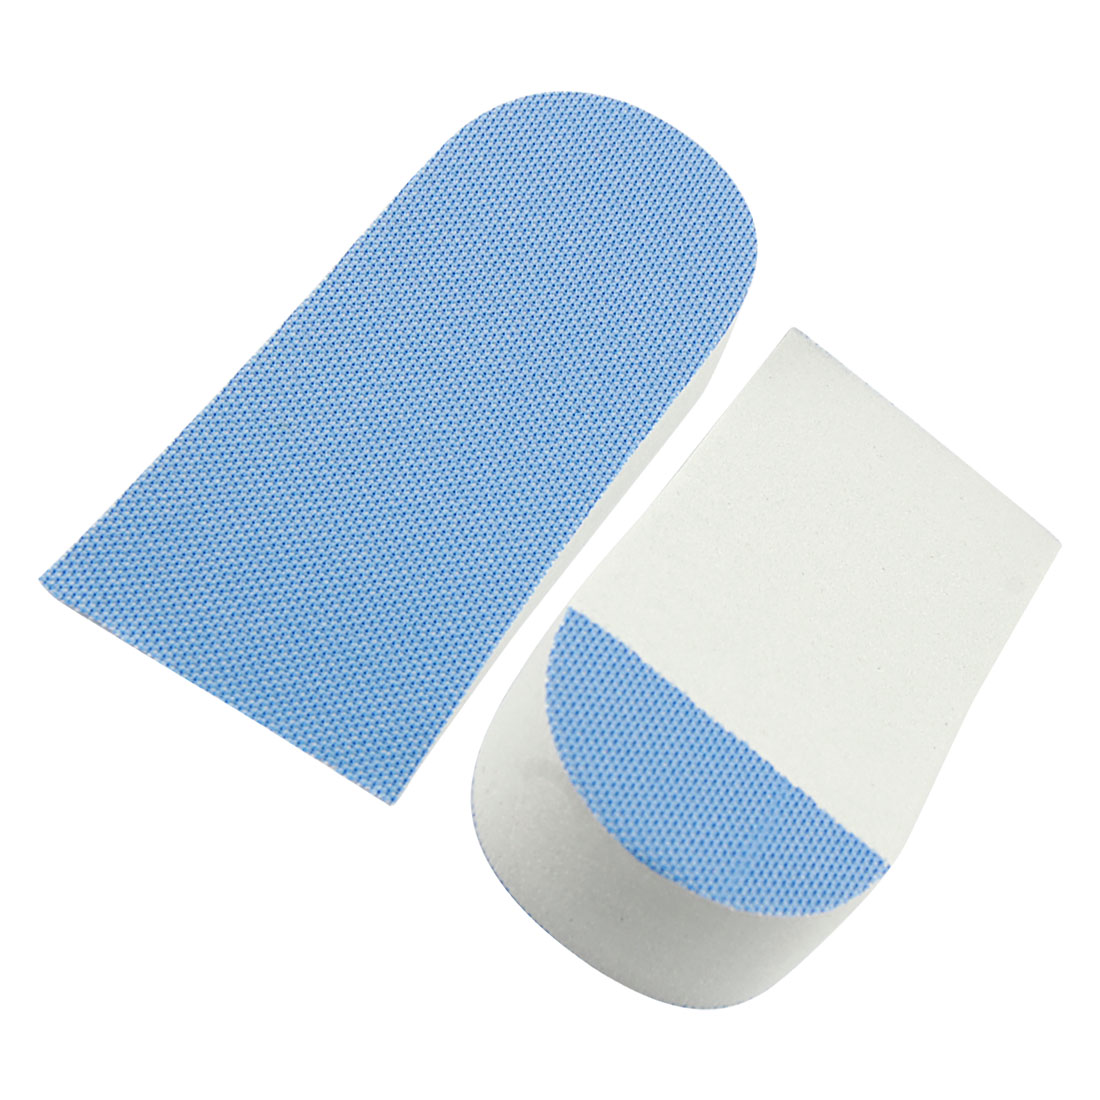 "0.9"" Up Blue Foam Shoes Insert Pads Heel Lift Height Increase Insole Pair"